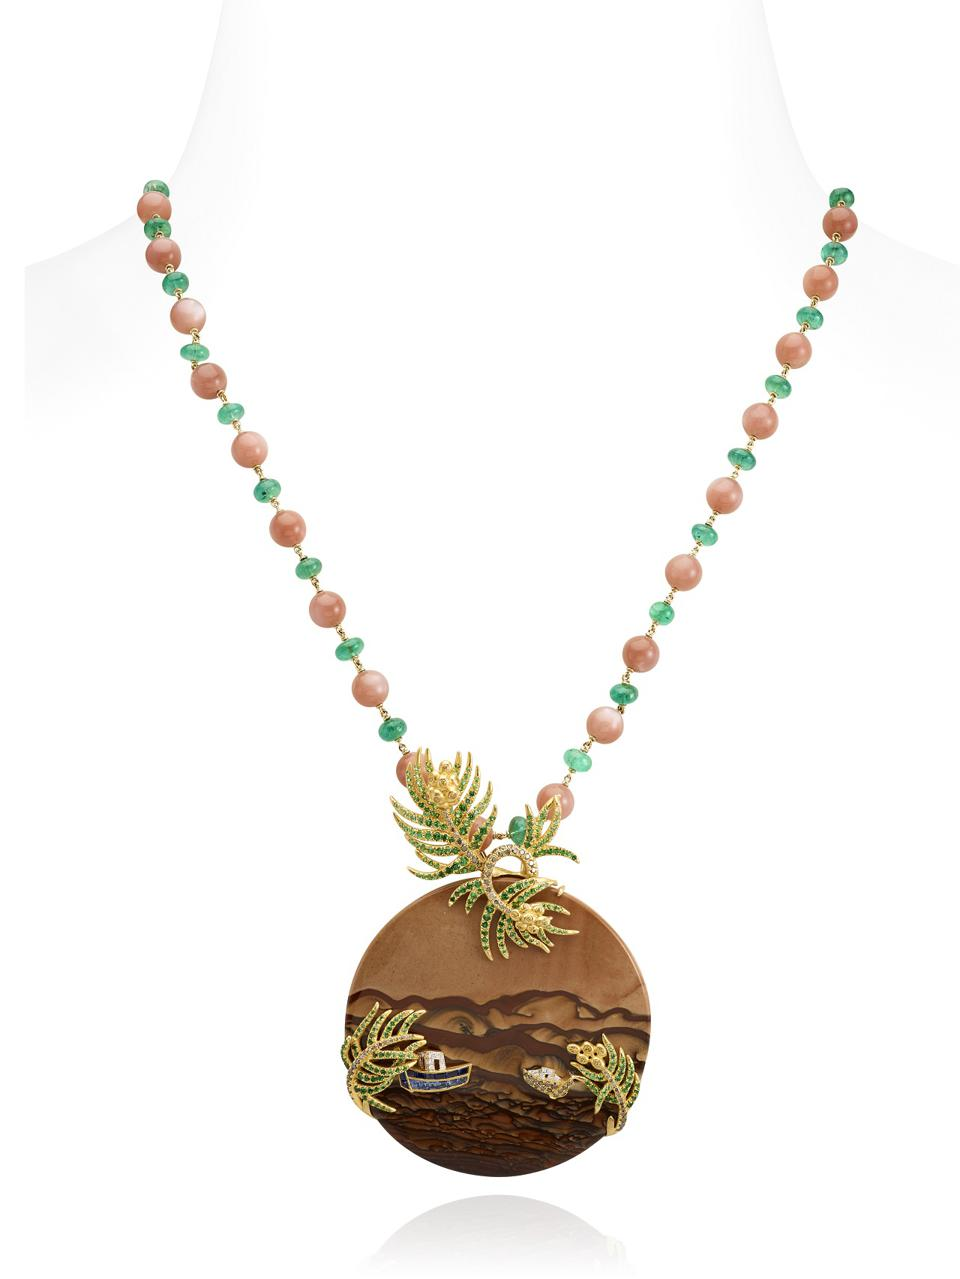 A necklace that depicts a lush oasis along the brown sands of the Gobi Desert